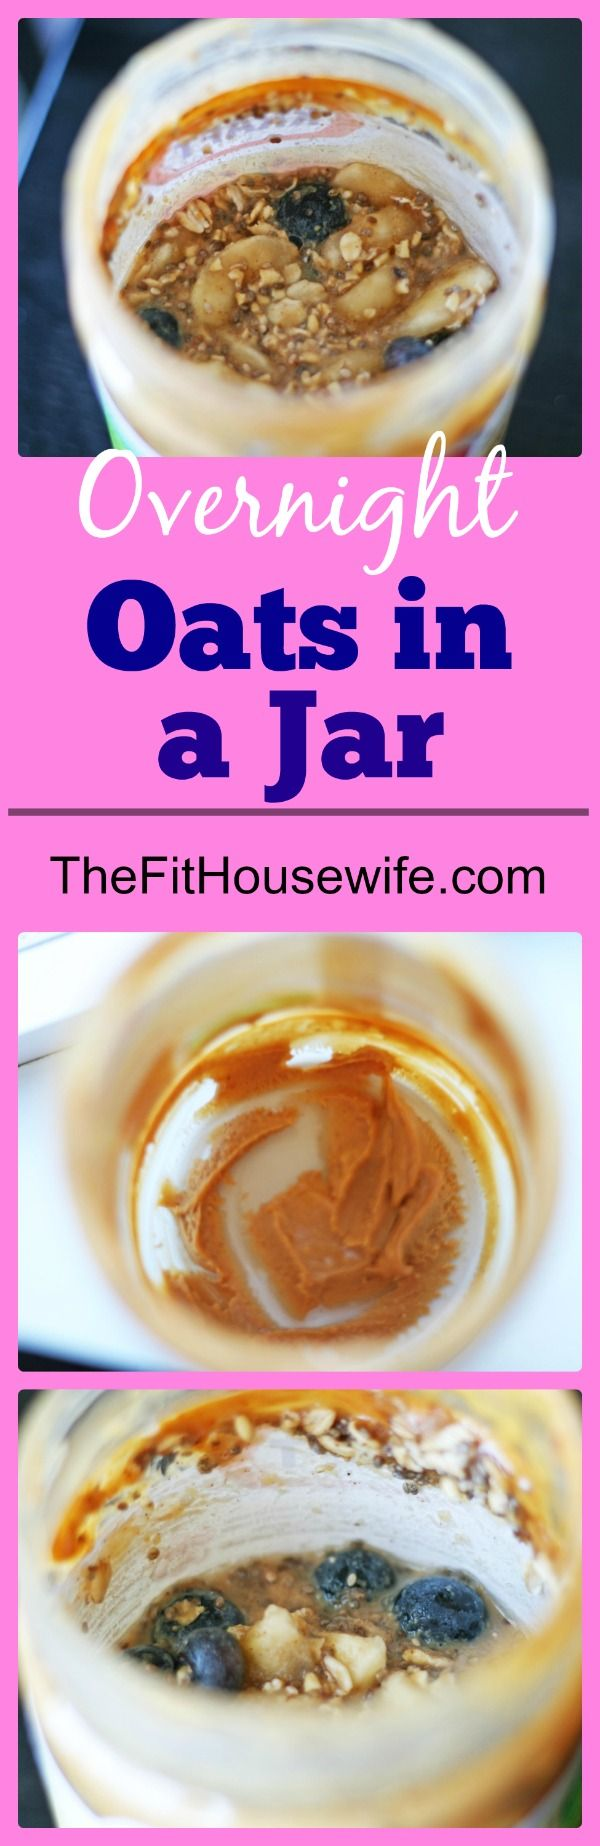 Overnight Oats in a Jar! A simple recipe for those who don't have time ...